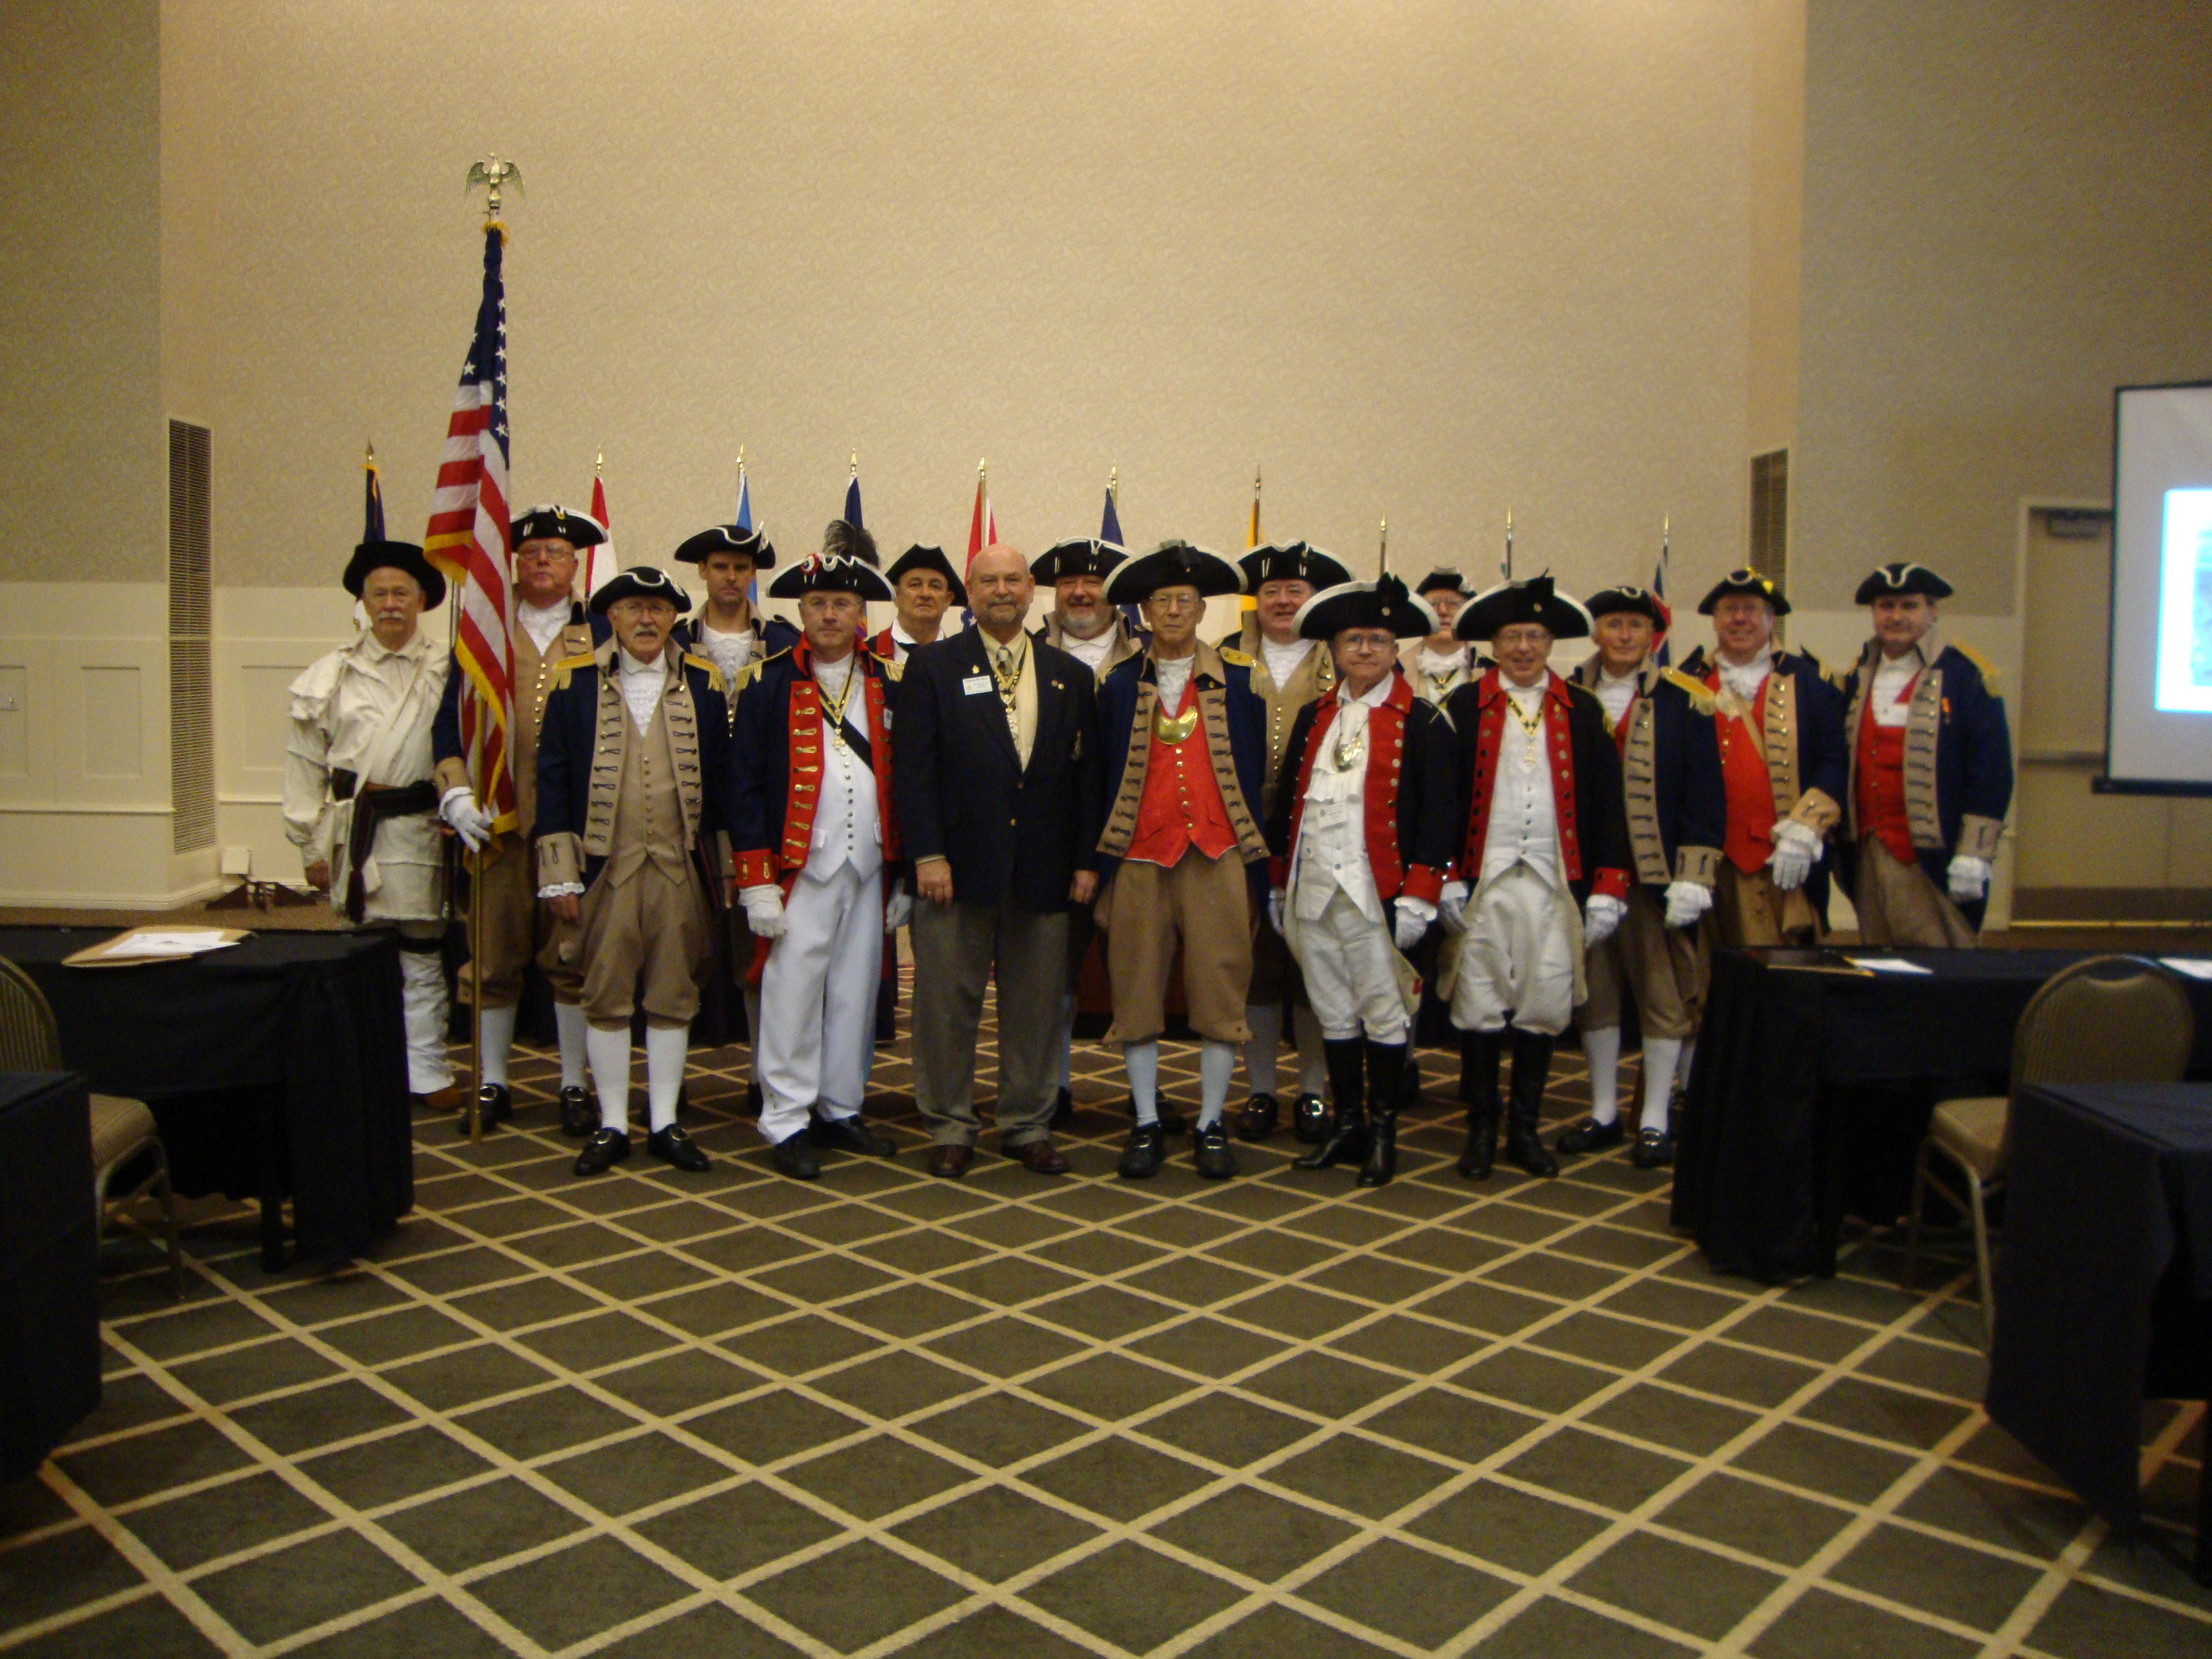 The South Central District Color Guard is shown here participating at the South Central District Annual Meeting at the Sheraton Overland Park Hotel, in Overland Park, Kansas on August 26-27, 2011.